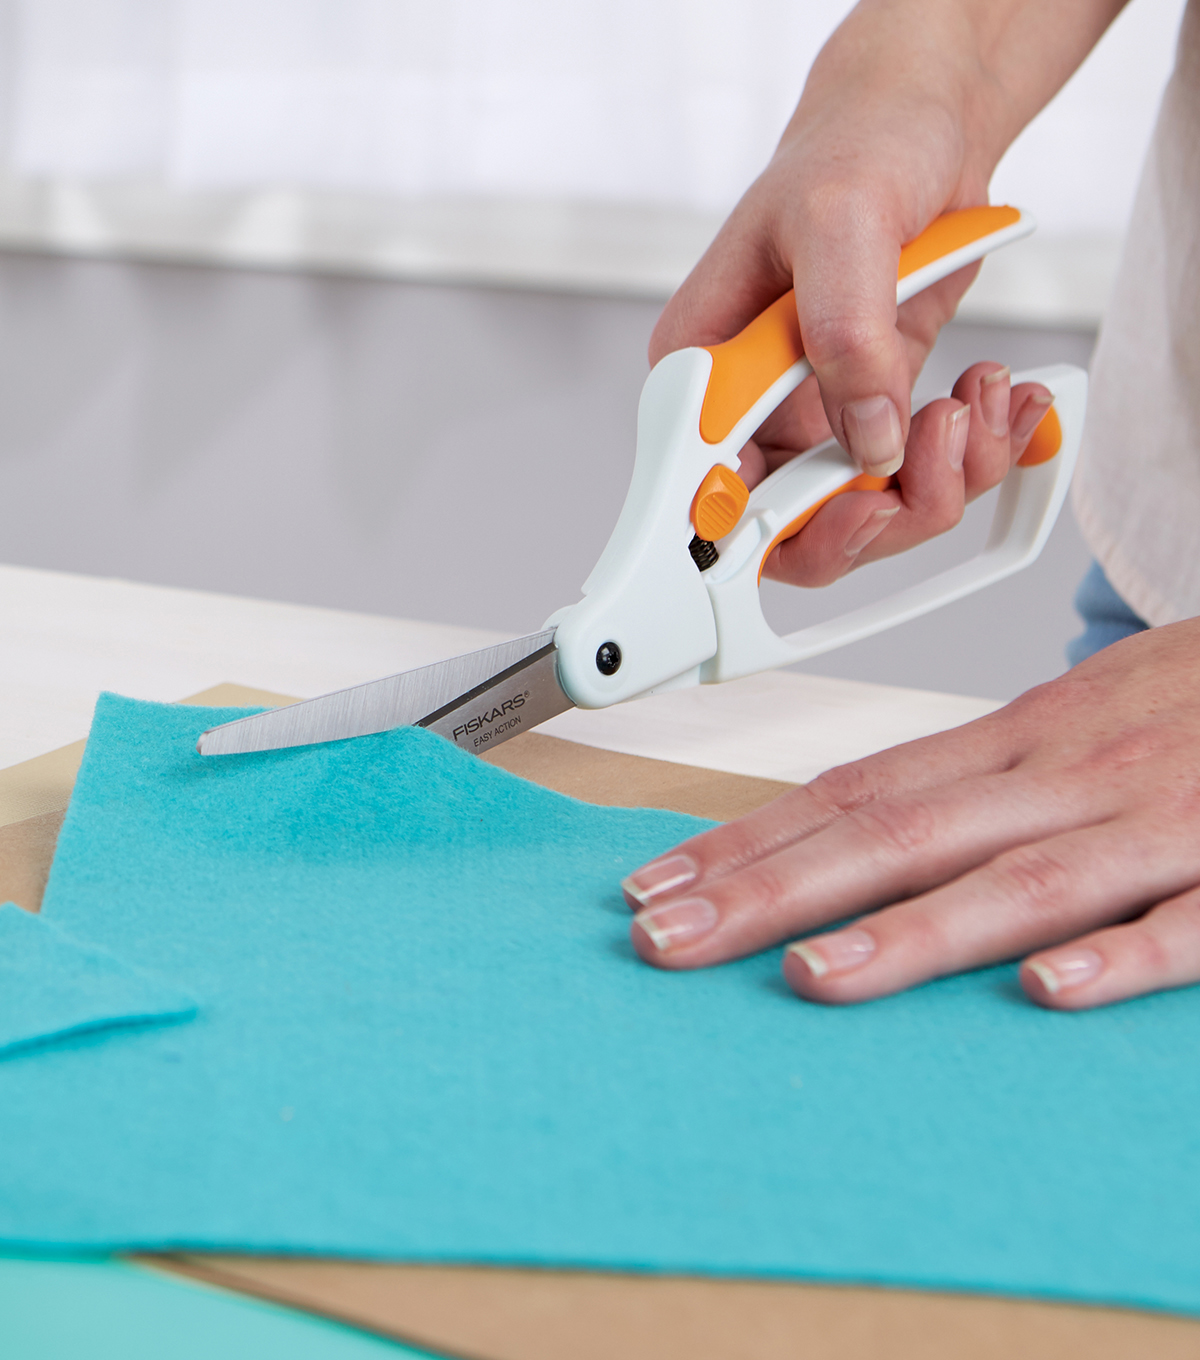 Fiskars Softouch Multi-Purpose Scissors